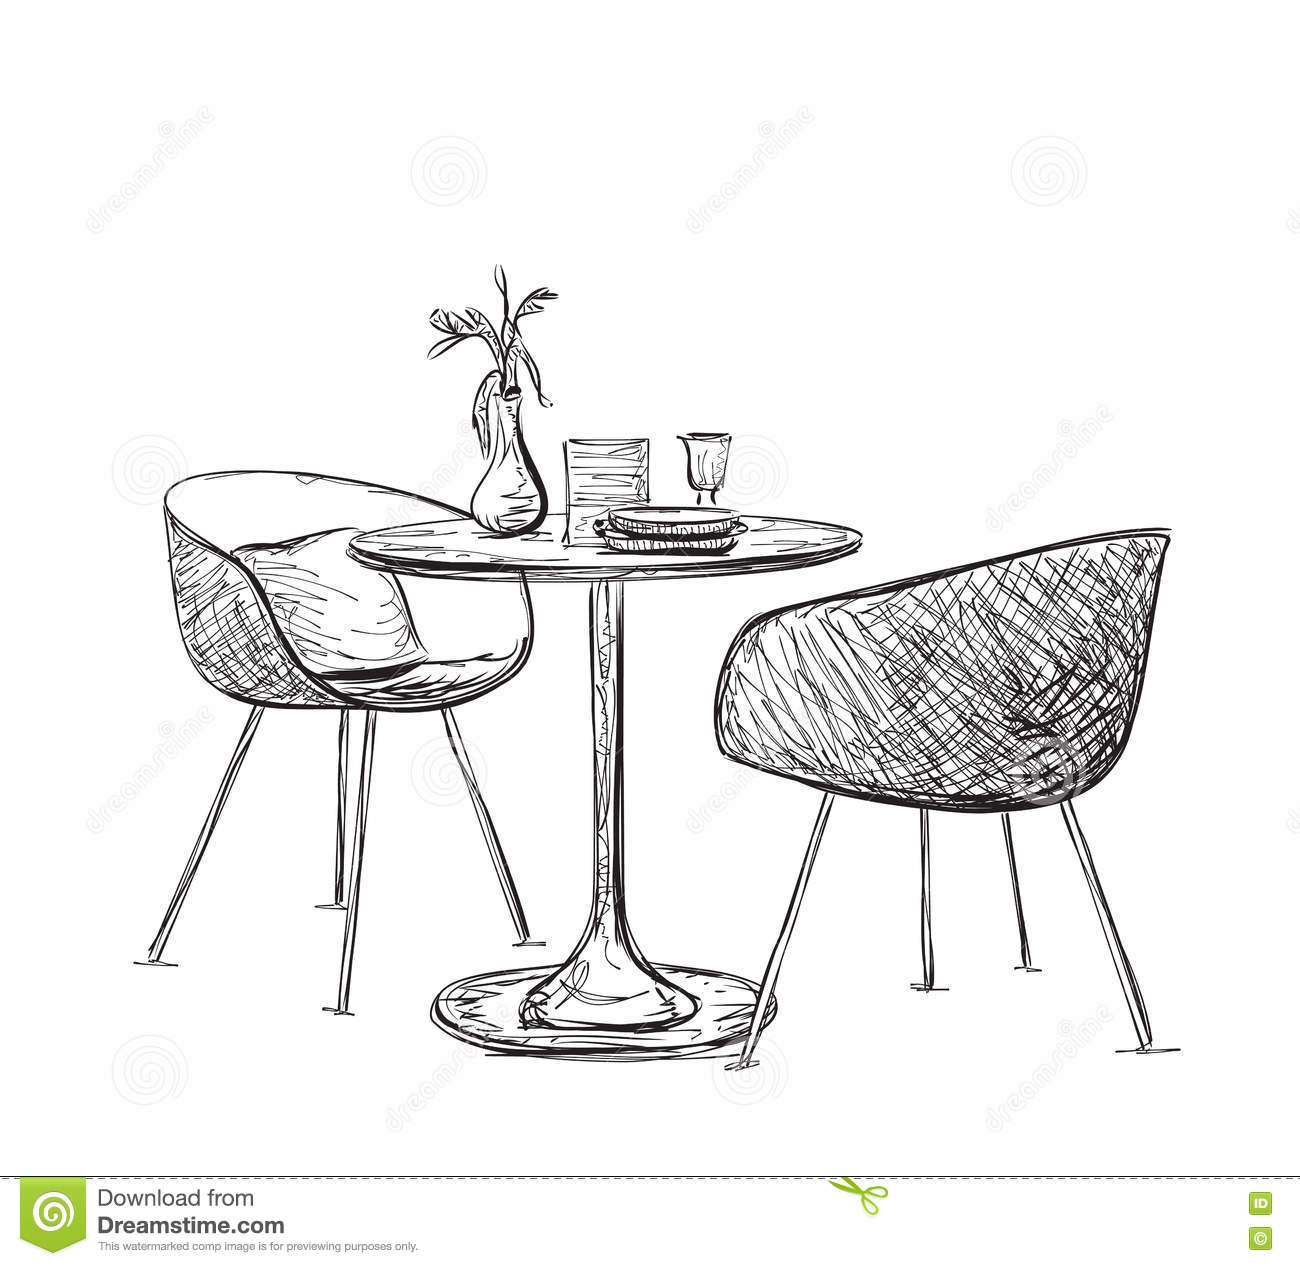 Modern furniture sketches chair sketches - Furniture Interior Modern Sketch